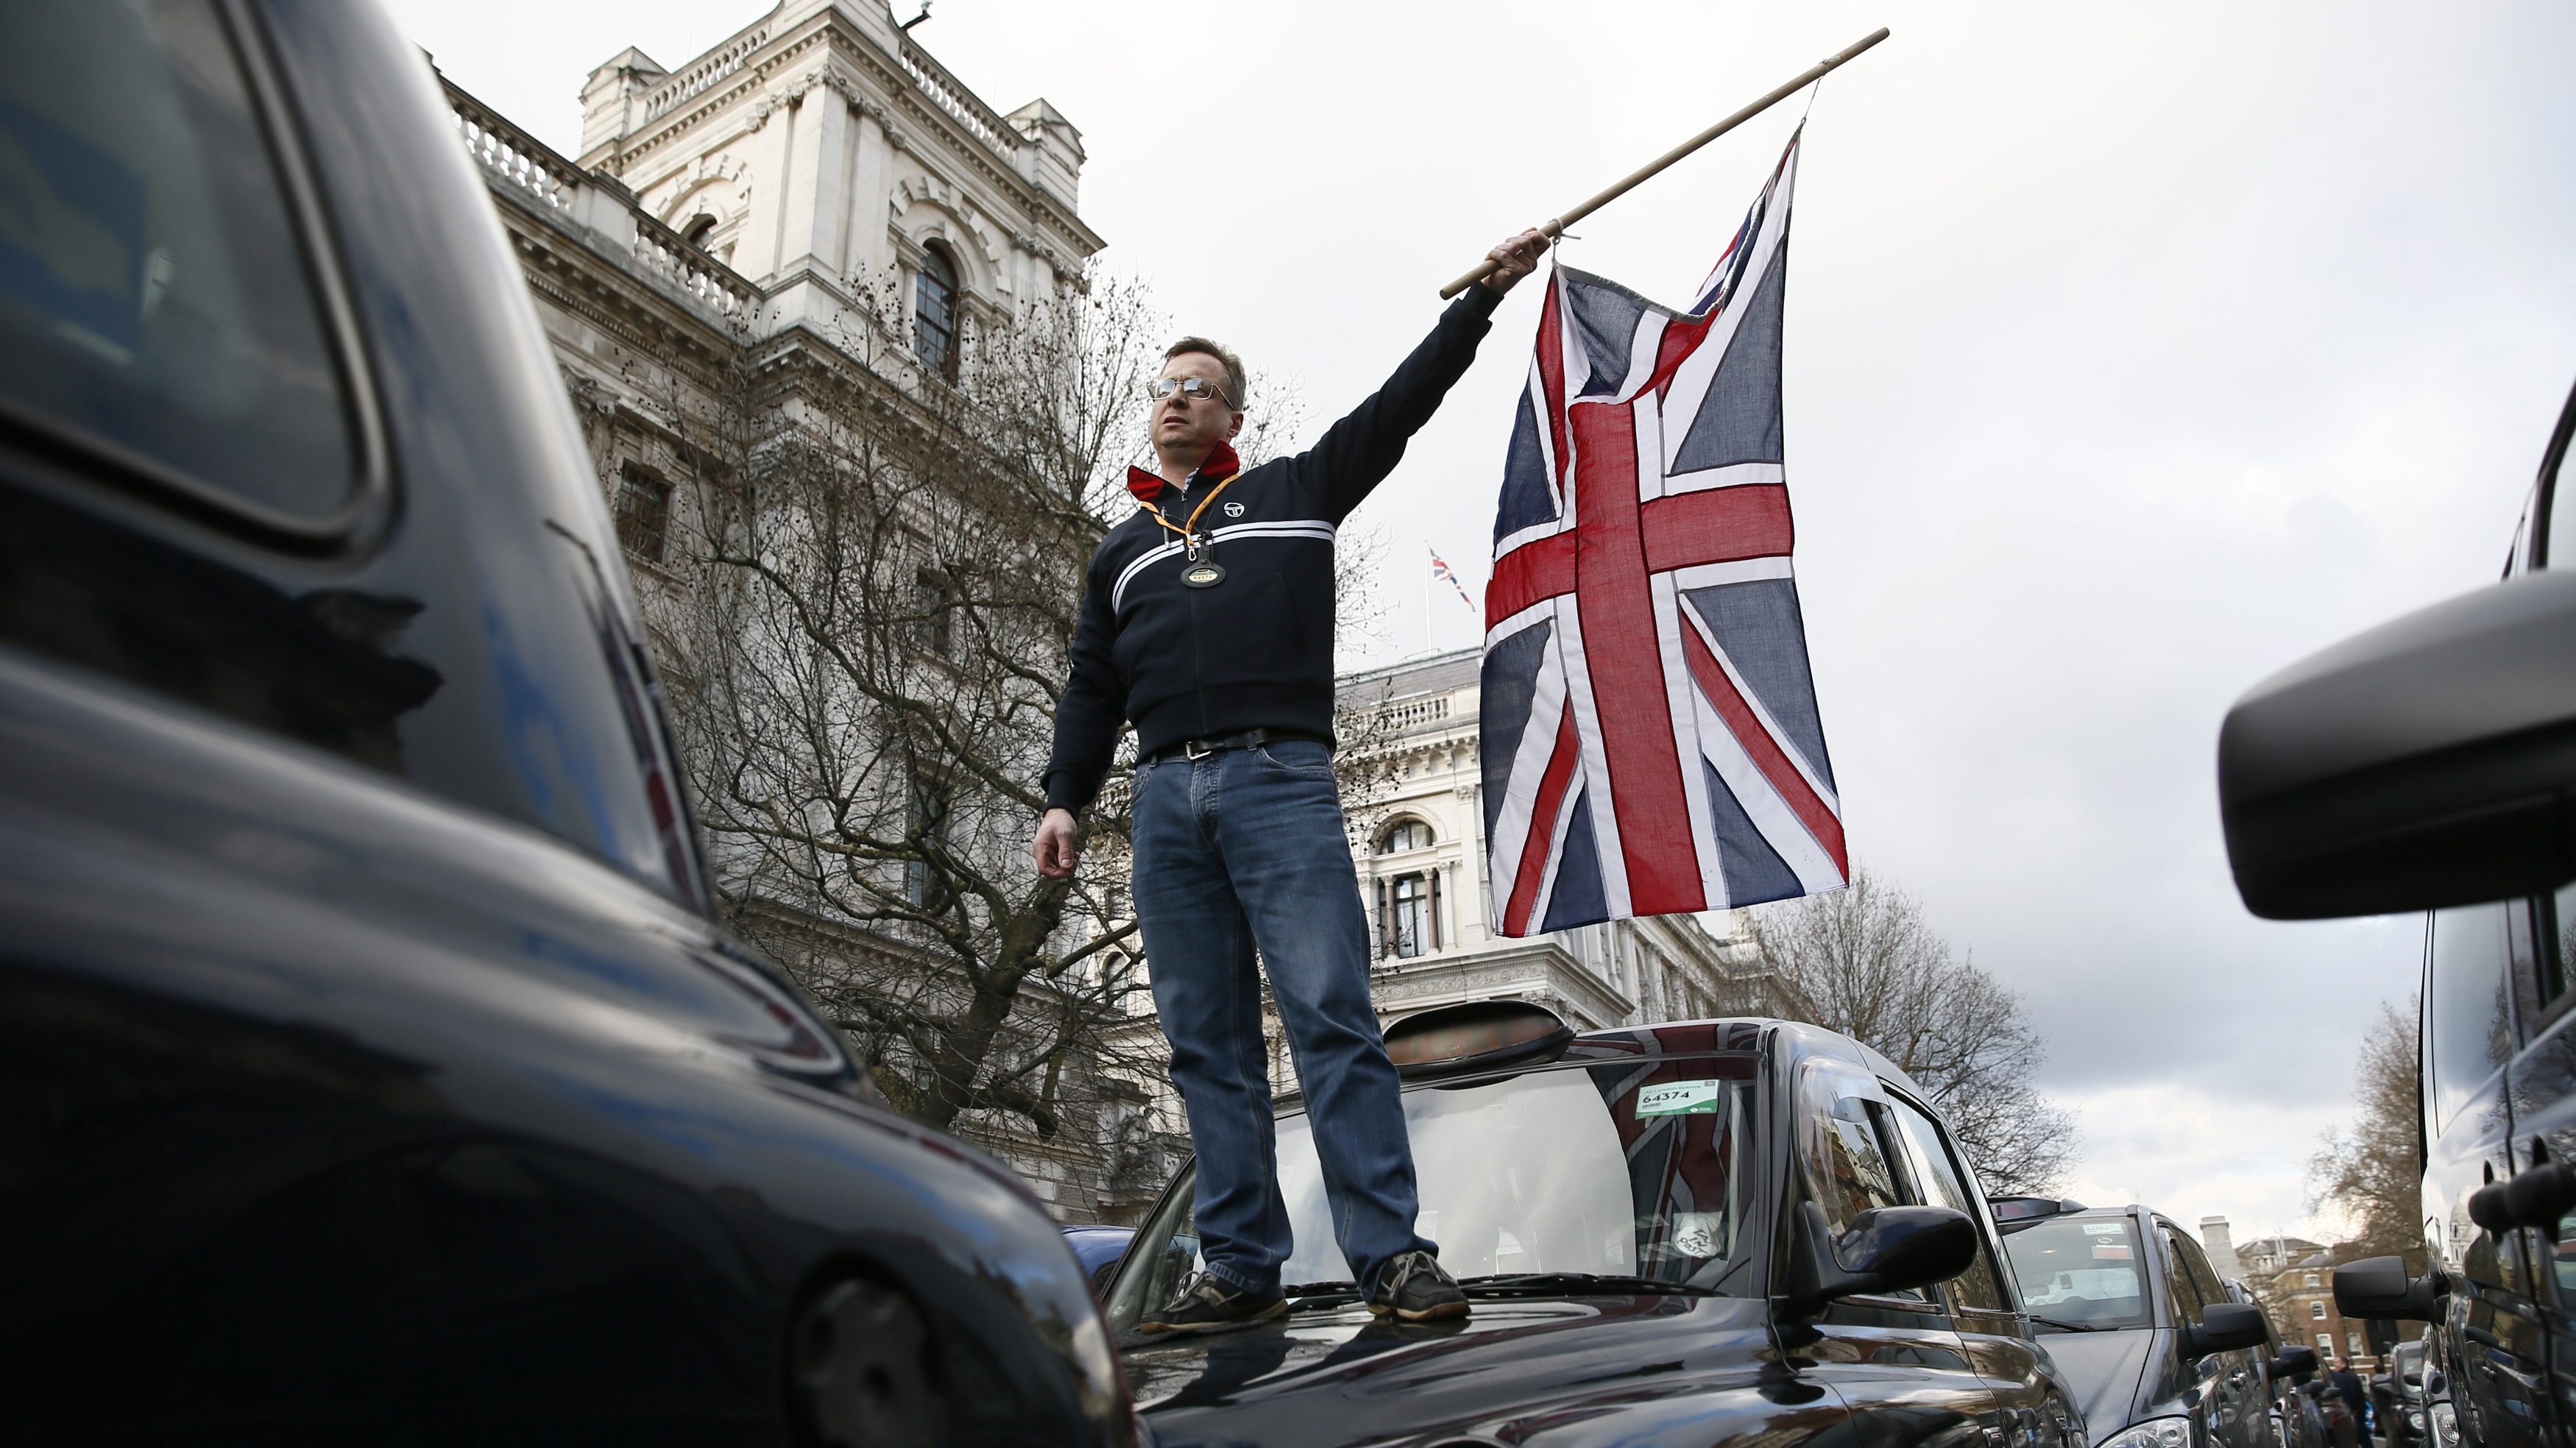 A London cab driver waves a Union flag as he stands on the bonnet of his taxi during a protest against Uber on Whitehall in central London, February 10, 2015 REUTERS/Stefan Wermuth - RTX26CG6